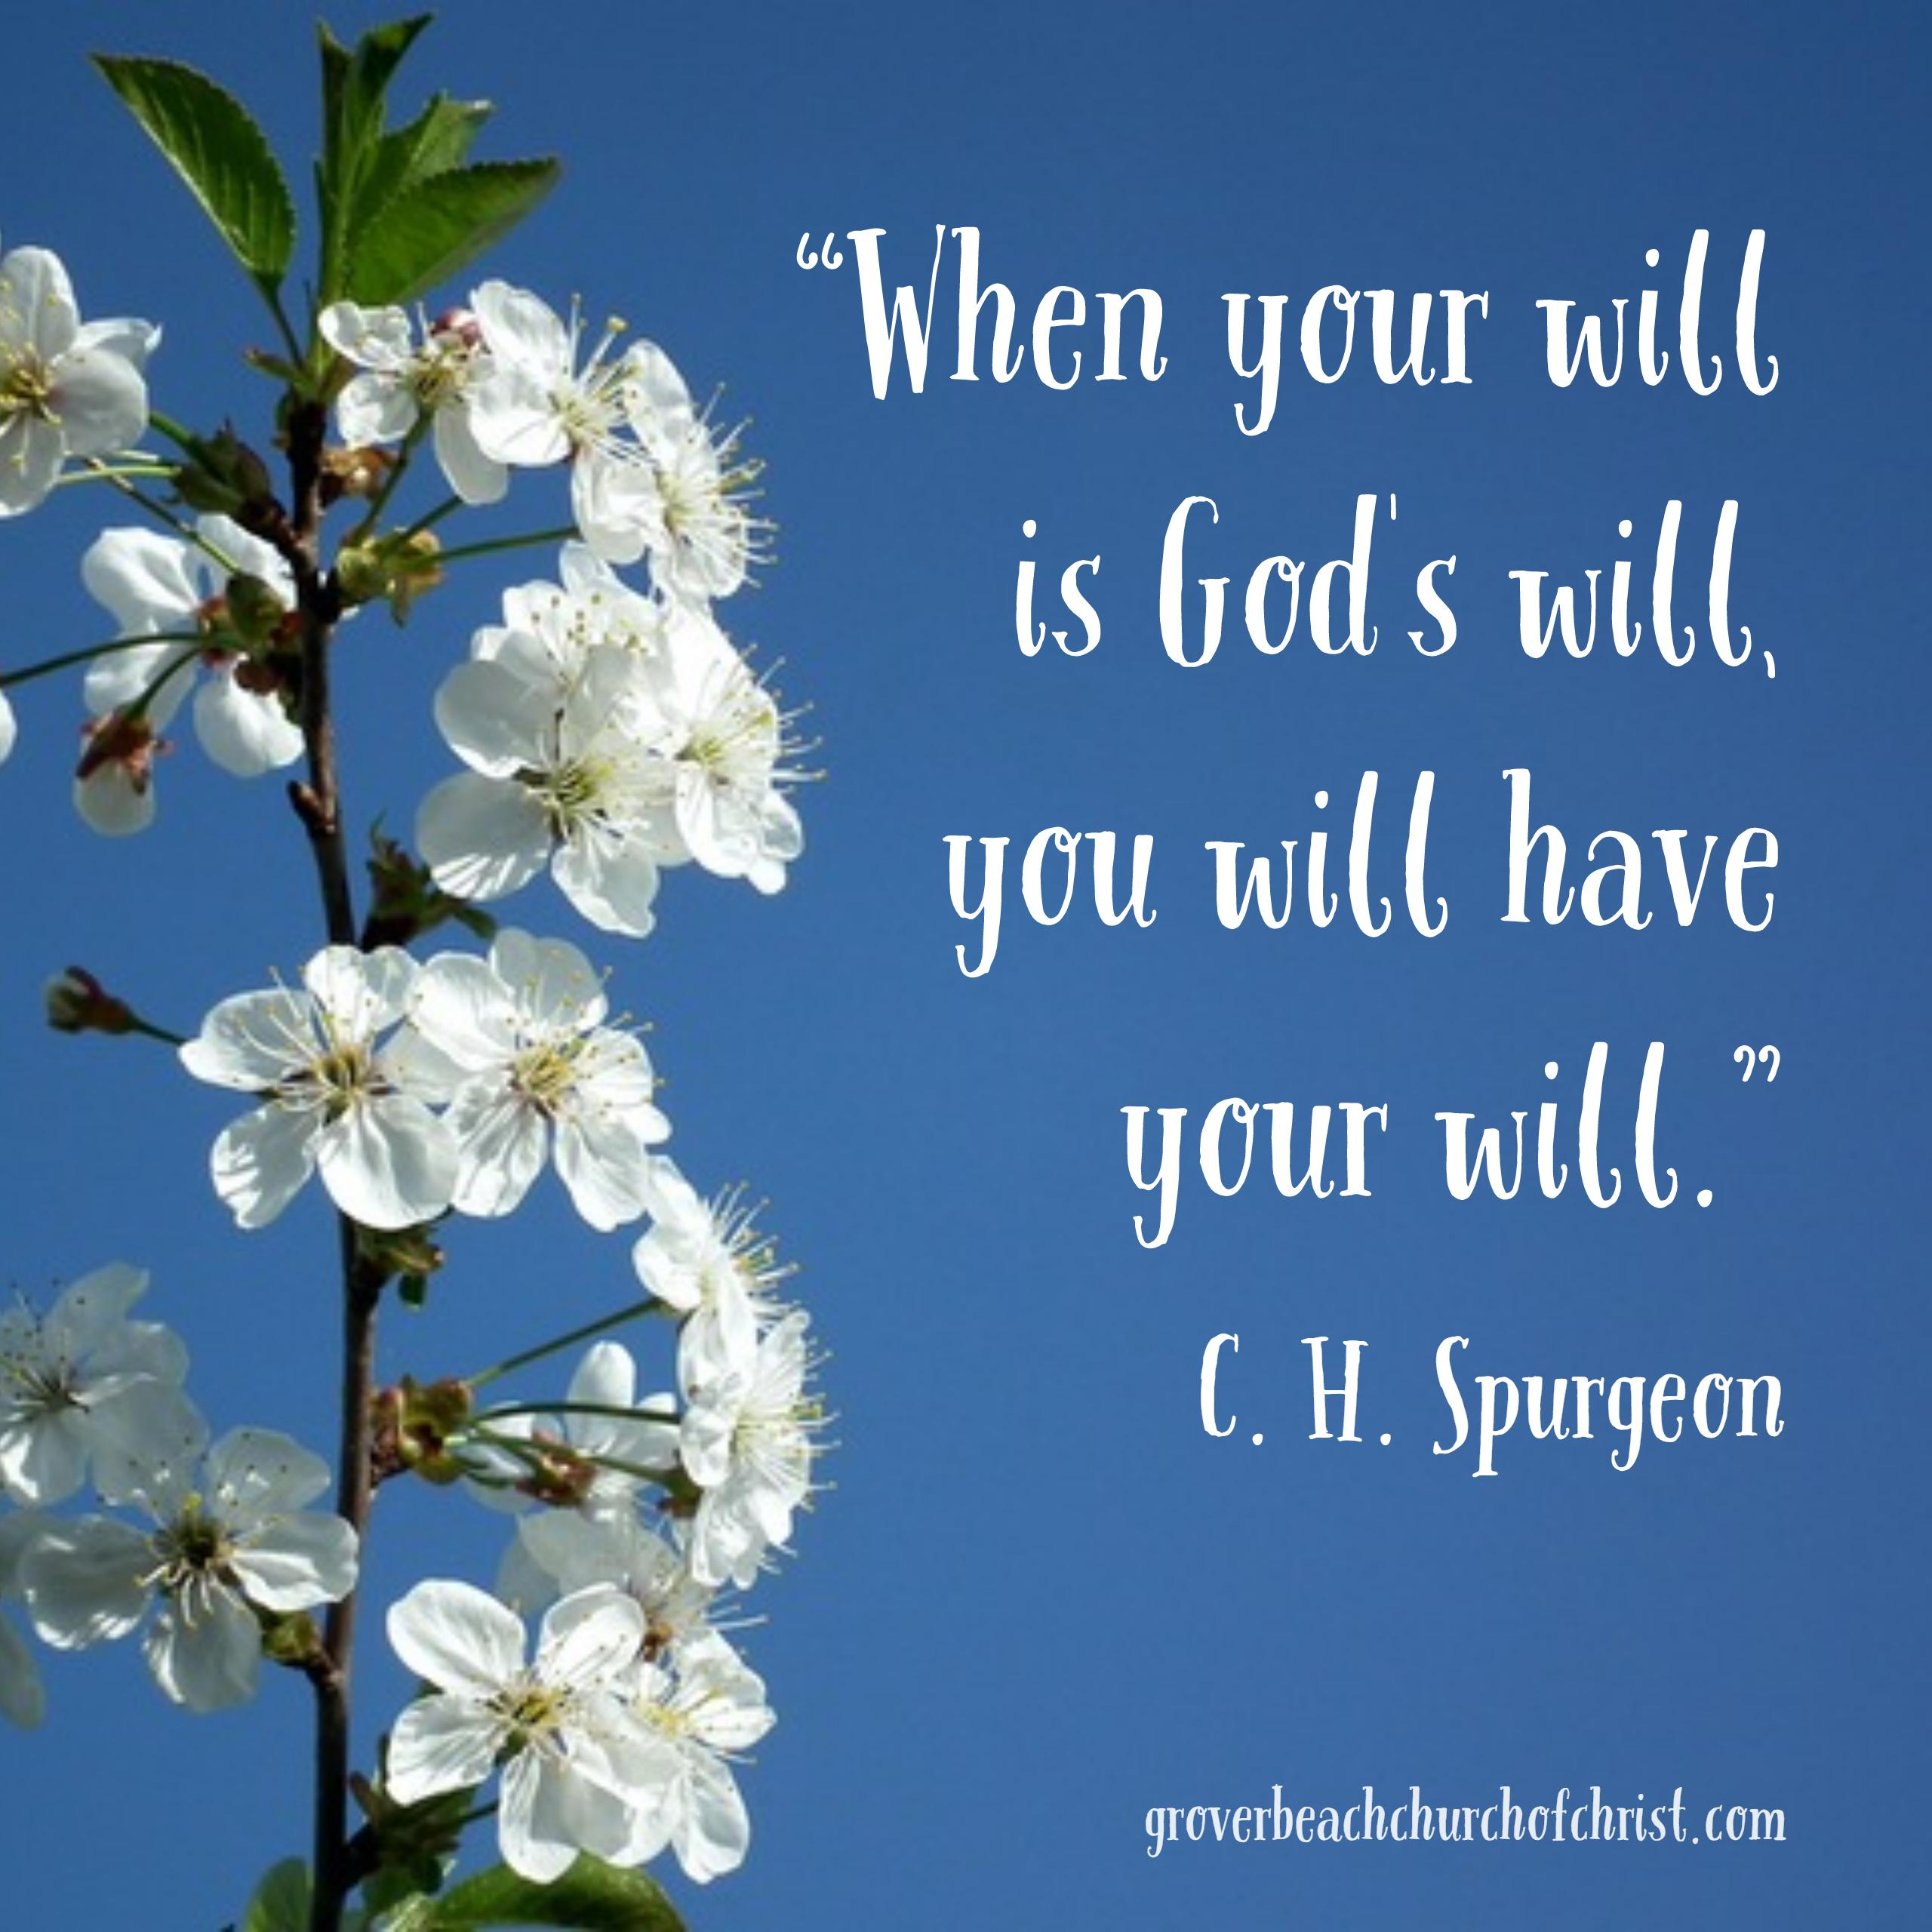 Spurgeon When your will is God's will